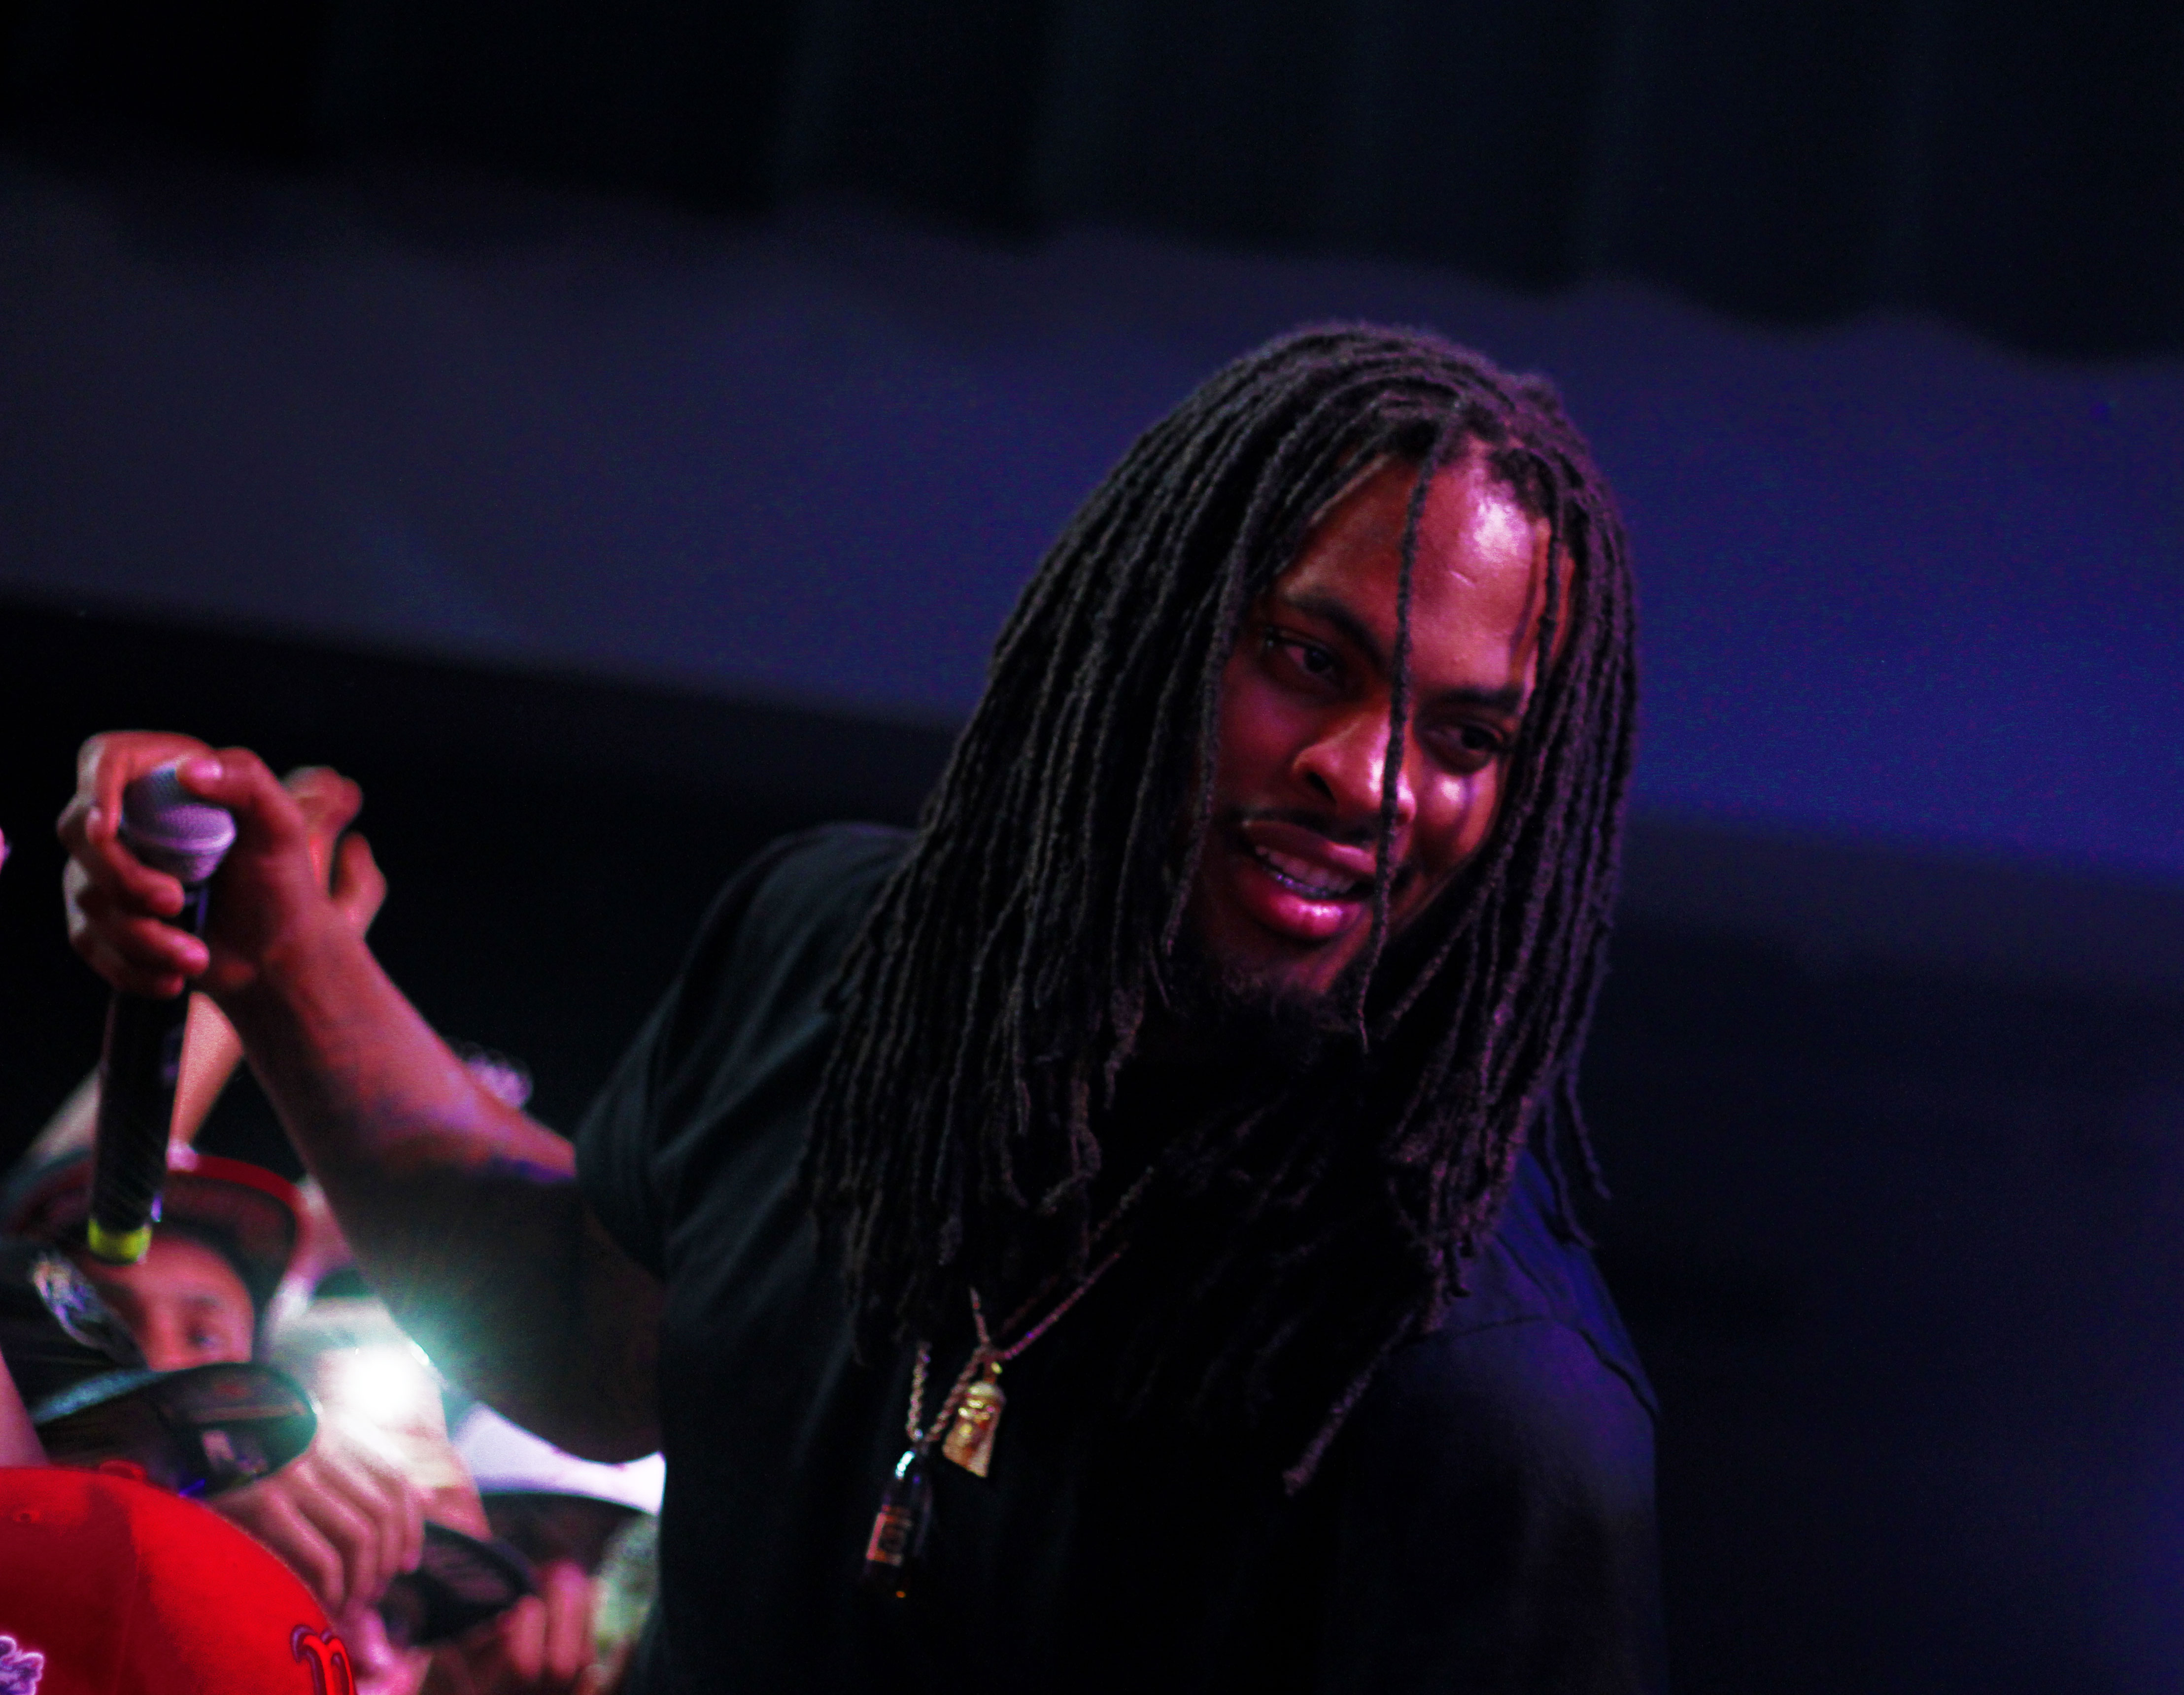 The 32-year old son of father (?) and mother Debra Antney Waka Flocka Flame in 2018 photo. Waka Flocka Flame earned a  million dollar salary - leaving the net worth at 7 million in 2018